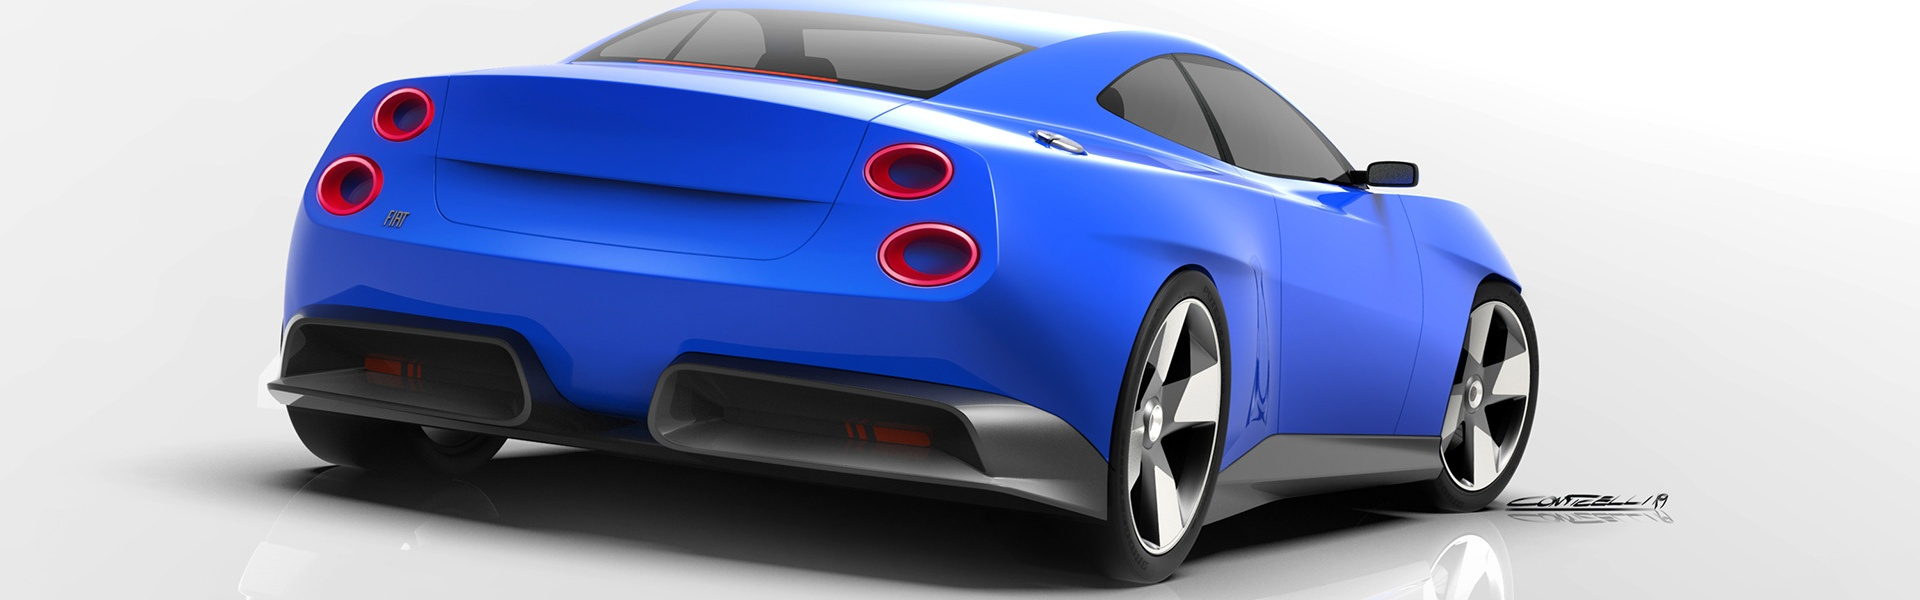 Fiat-Coupe-Tribute-renderings-by-Gaspare-Conticelli-6.jpg